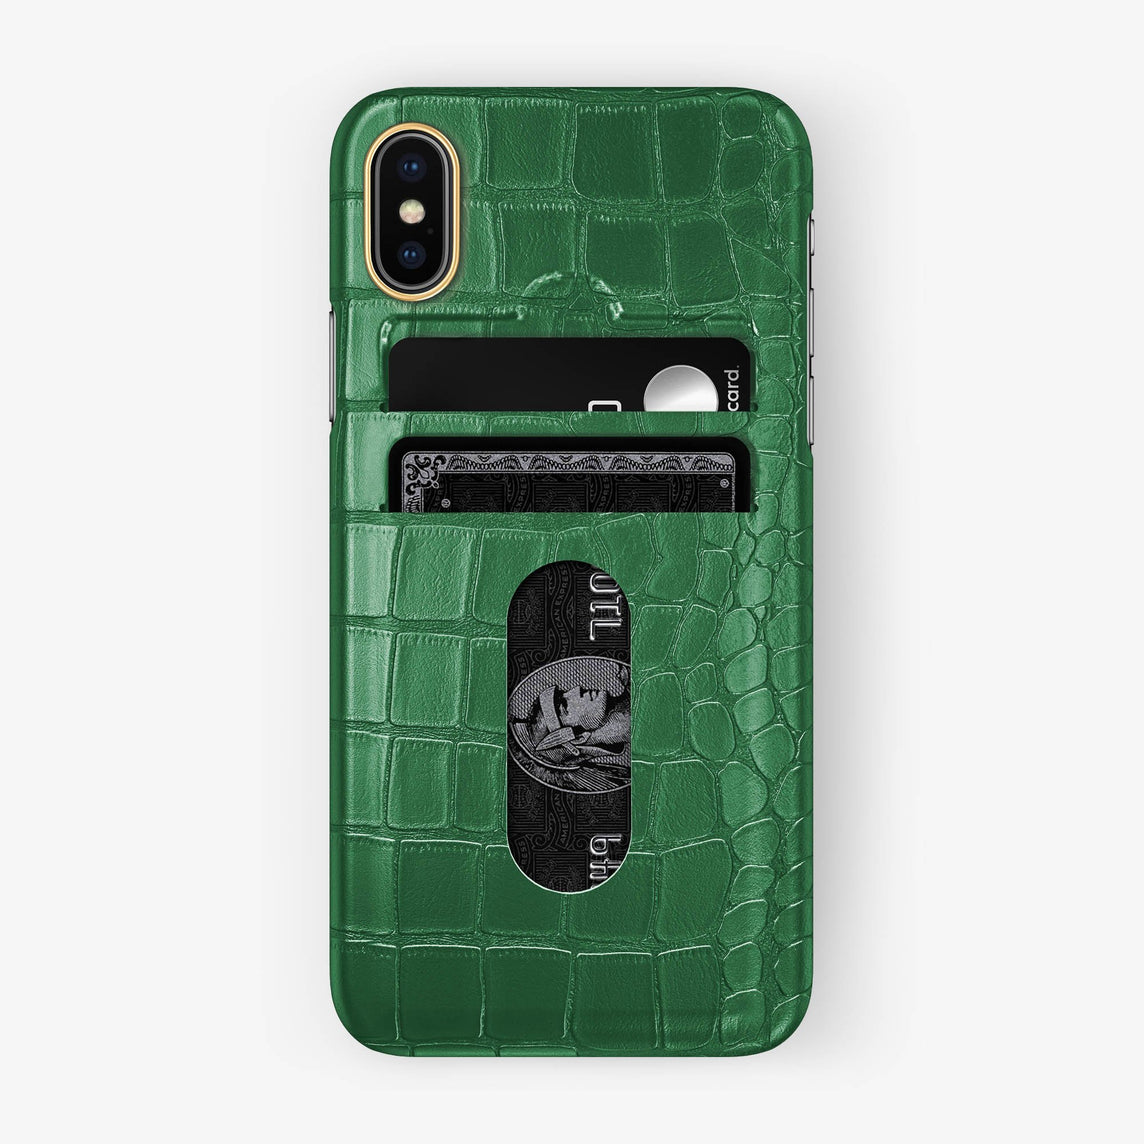 Alligator Card Holder Case iPhone X/Xs | Green - Yellow Gold with-personalization